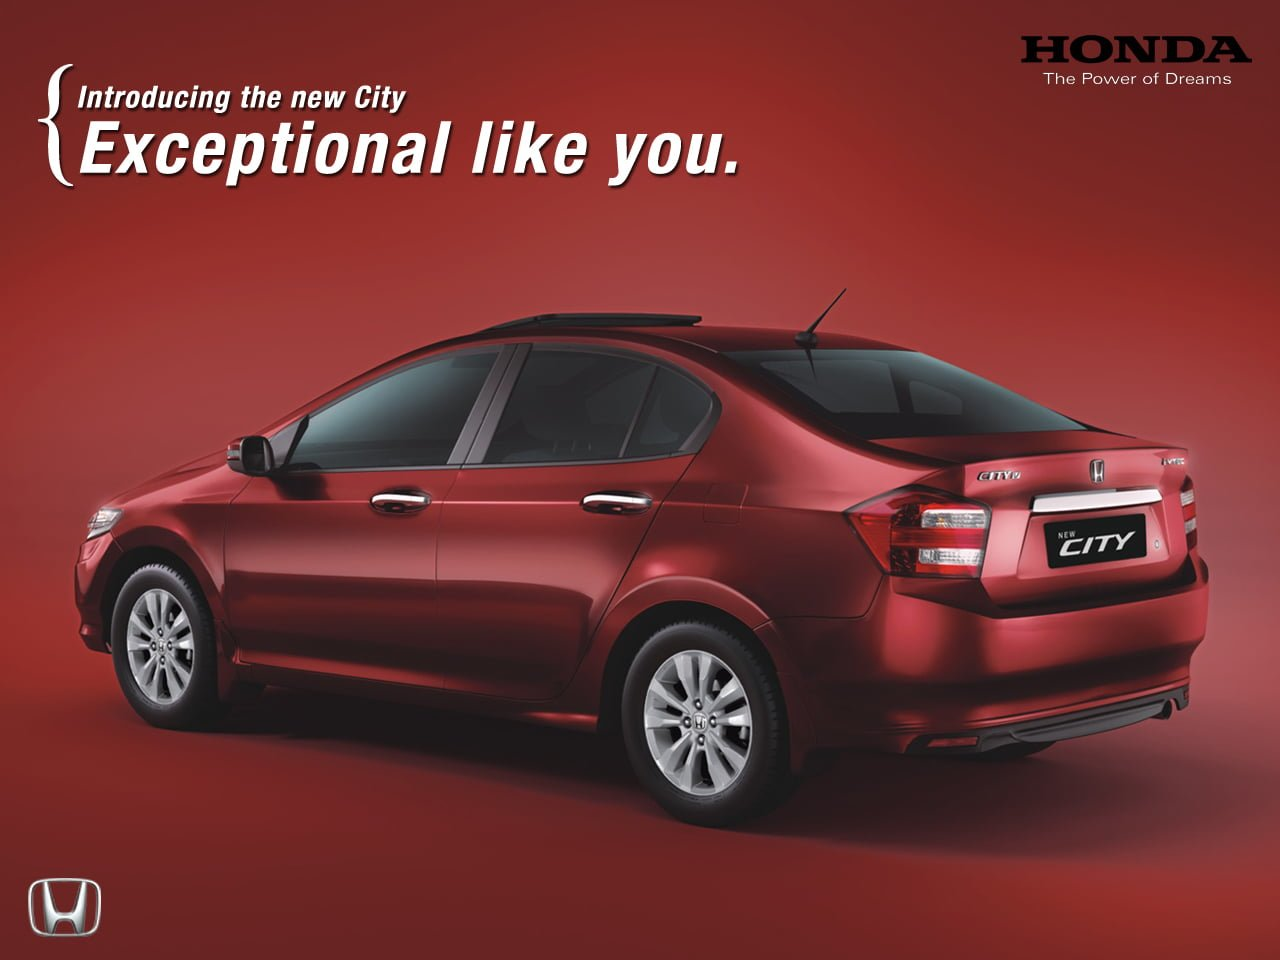 New Honda City View 2